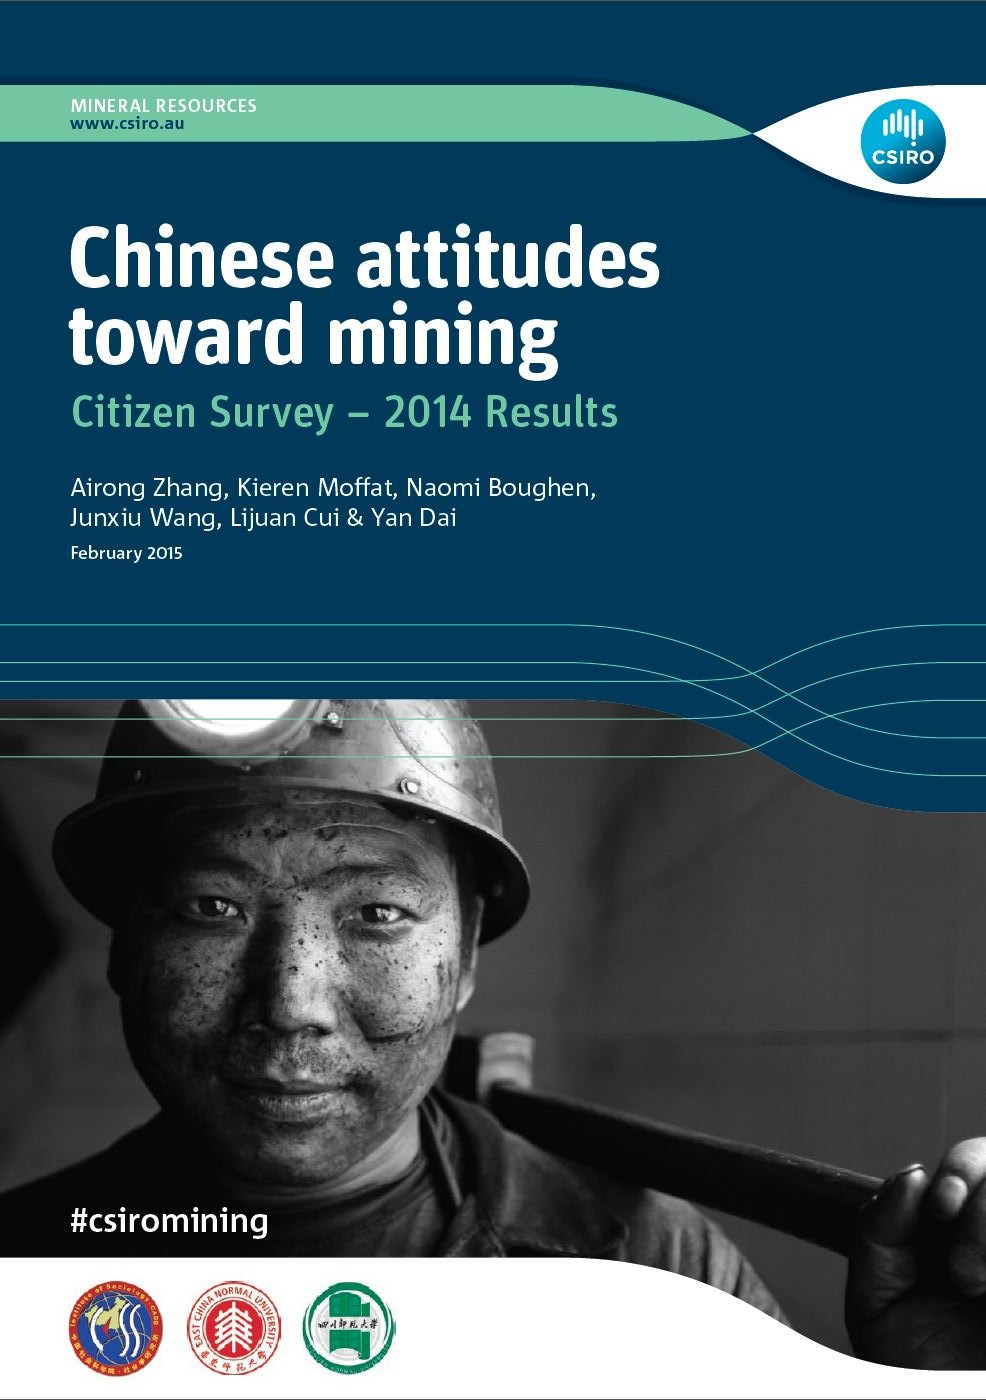 Report cover of Chinese attitudes towards mining - a citizen survey, showing a closeup of the face of a coal-dust covered Chinese mine worker in a hard hat